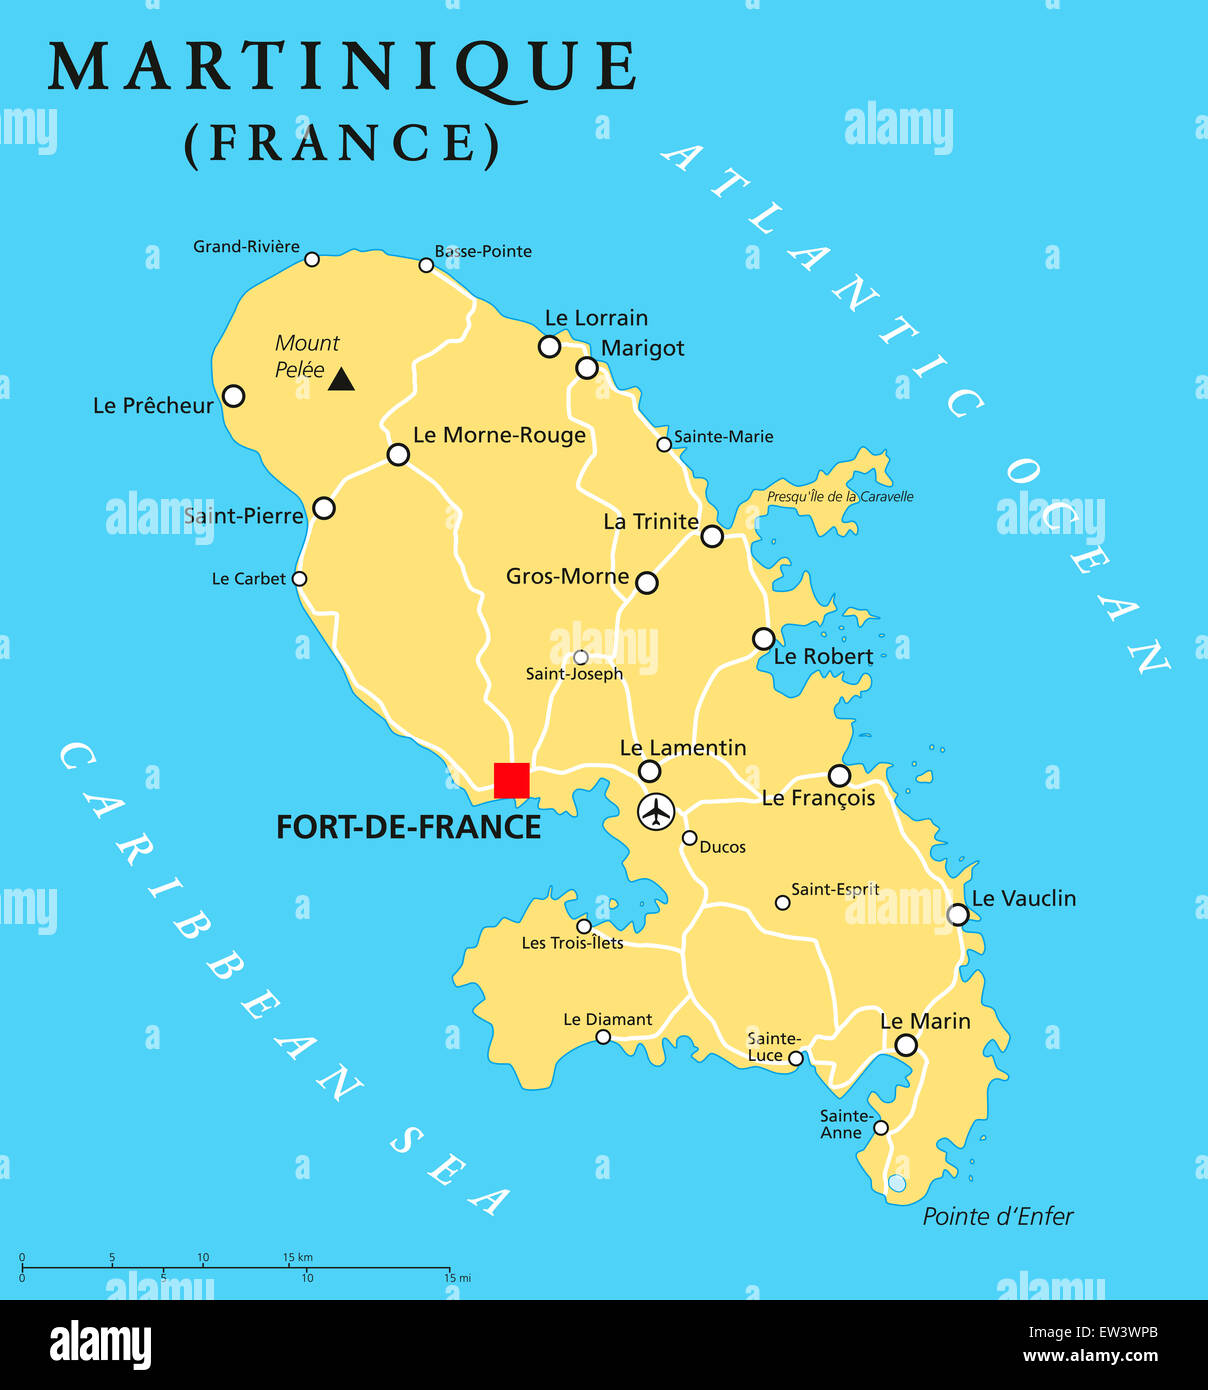 Martinique political map with capital Fort-de-France and ...